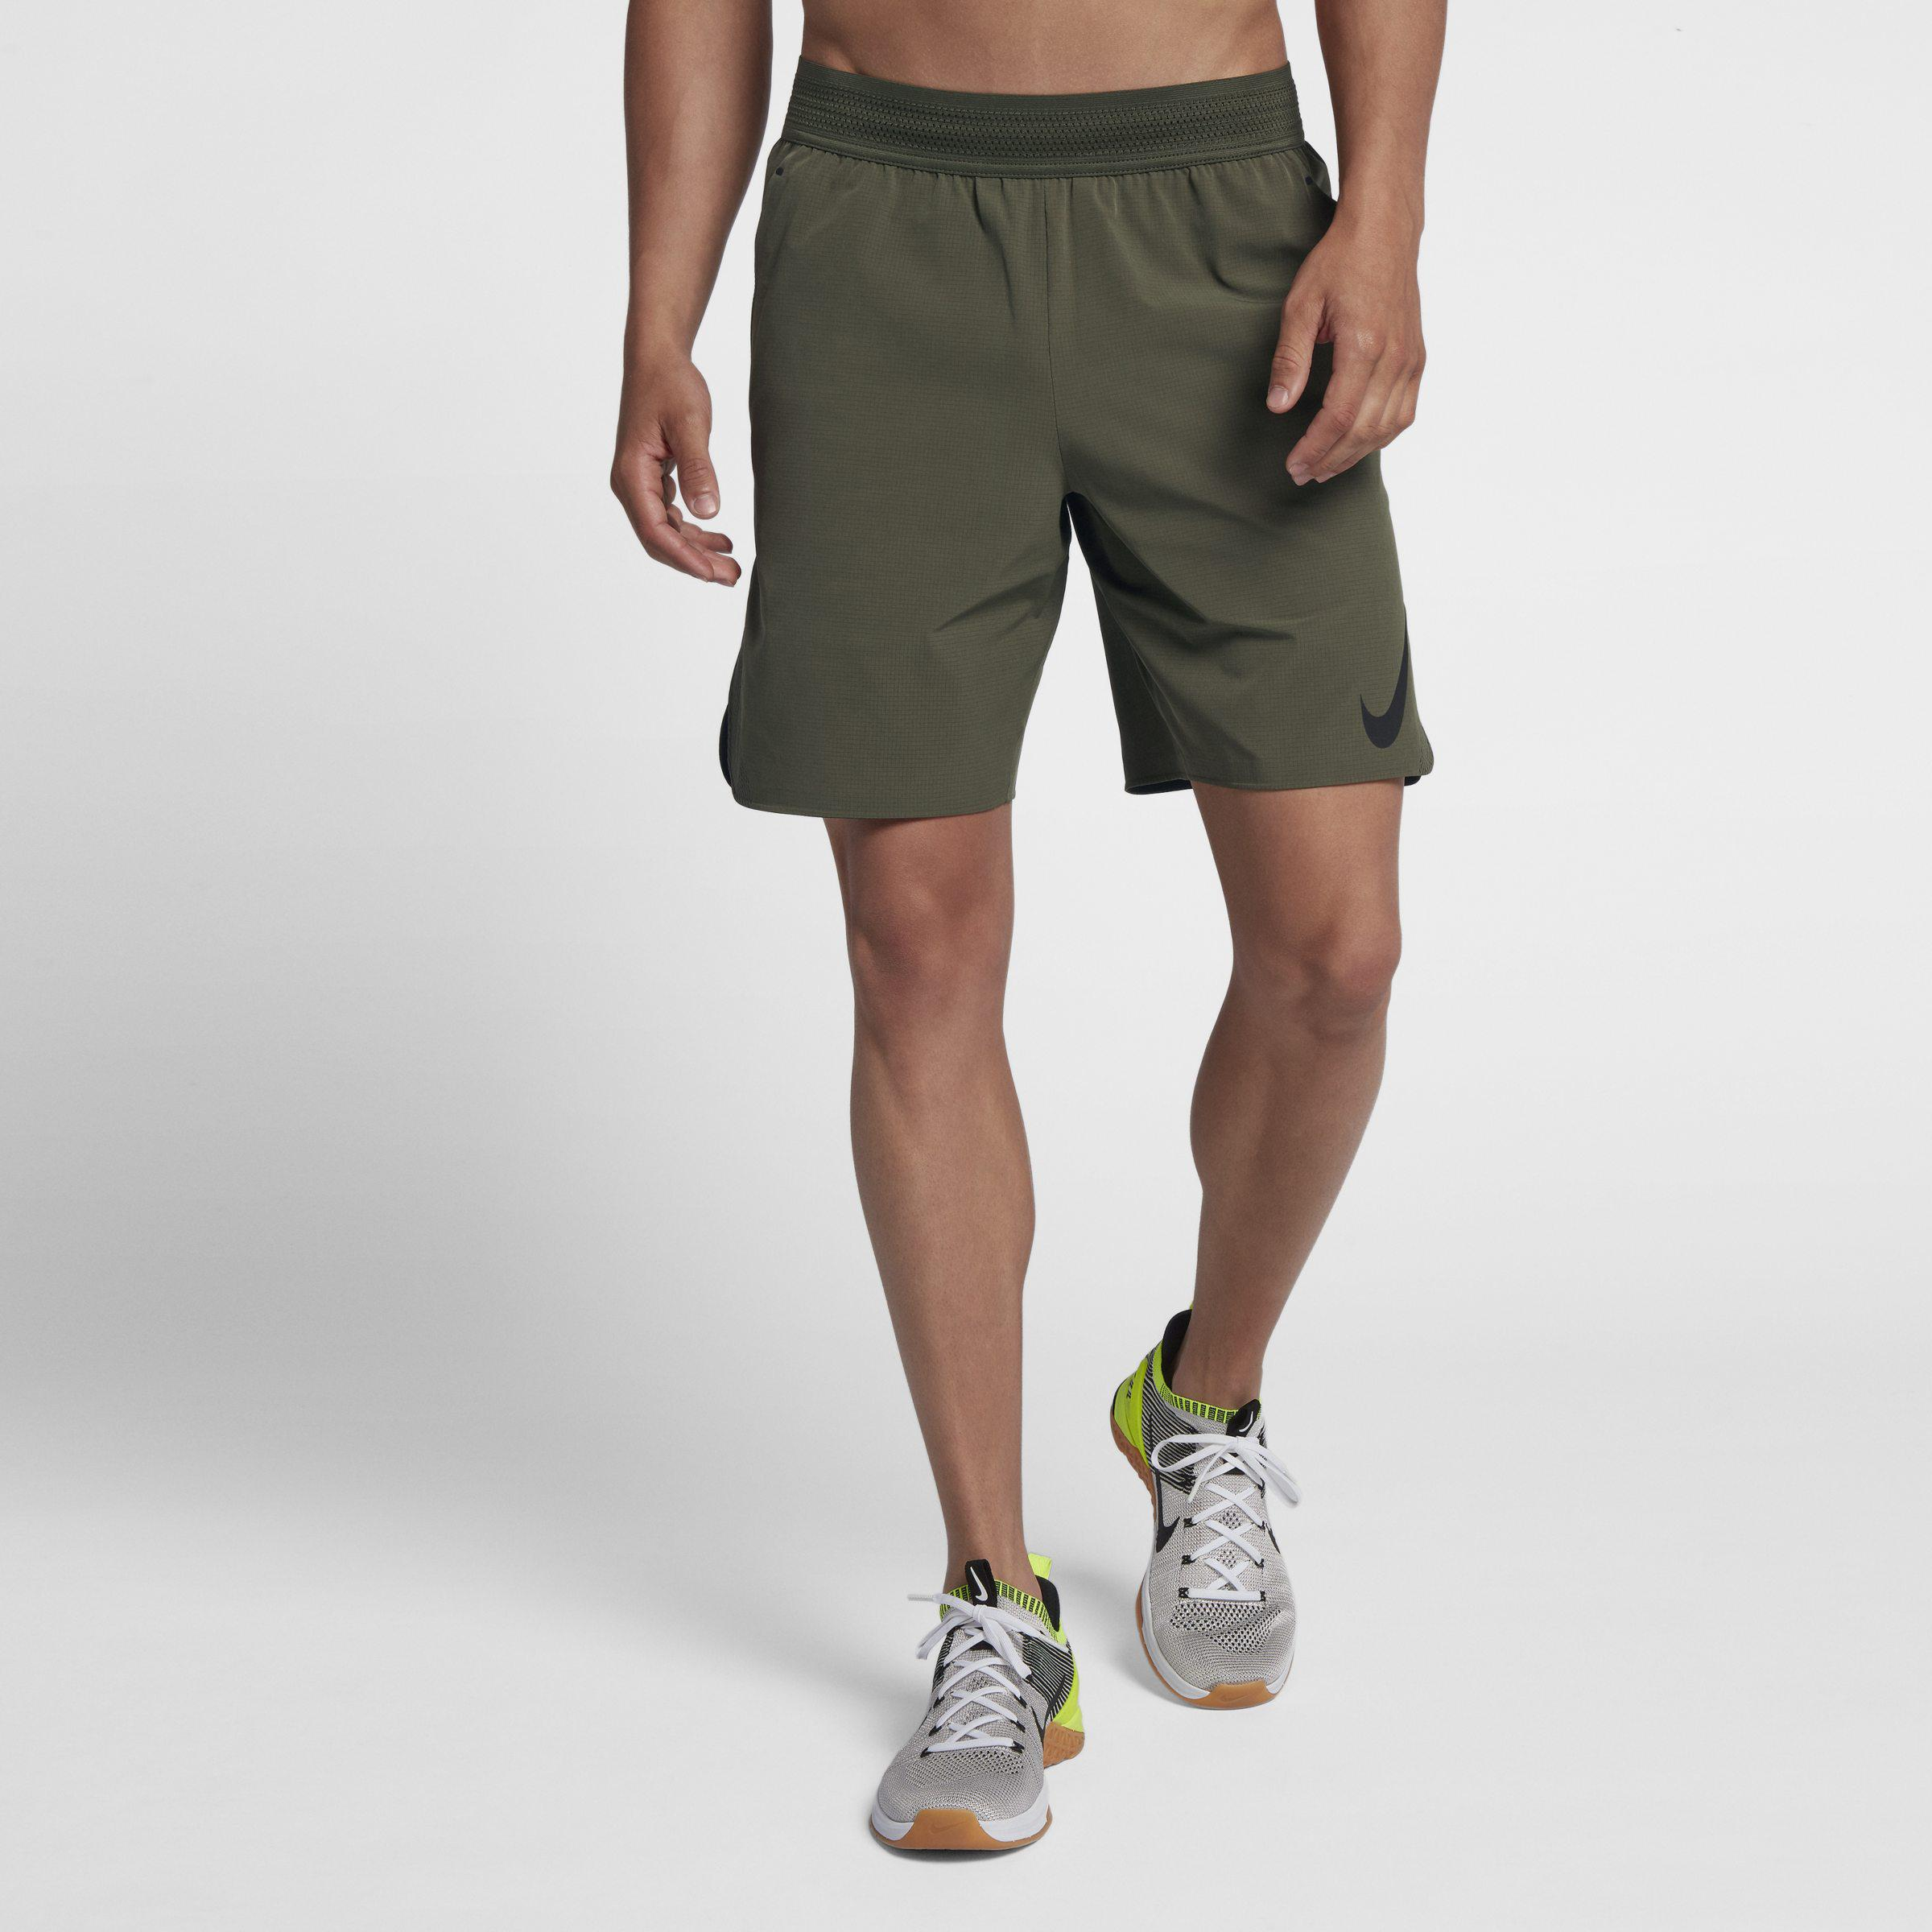 a36e5181ed8b Nike Flex Repel Men s Training Shorts in Green for Men - Lyst